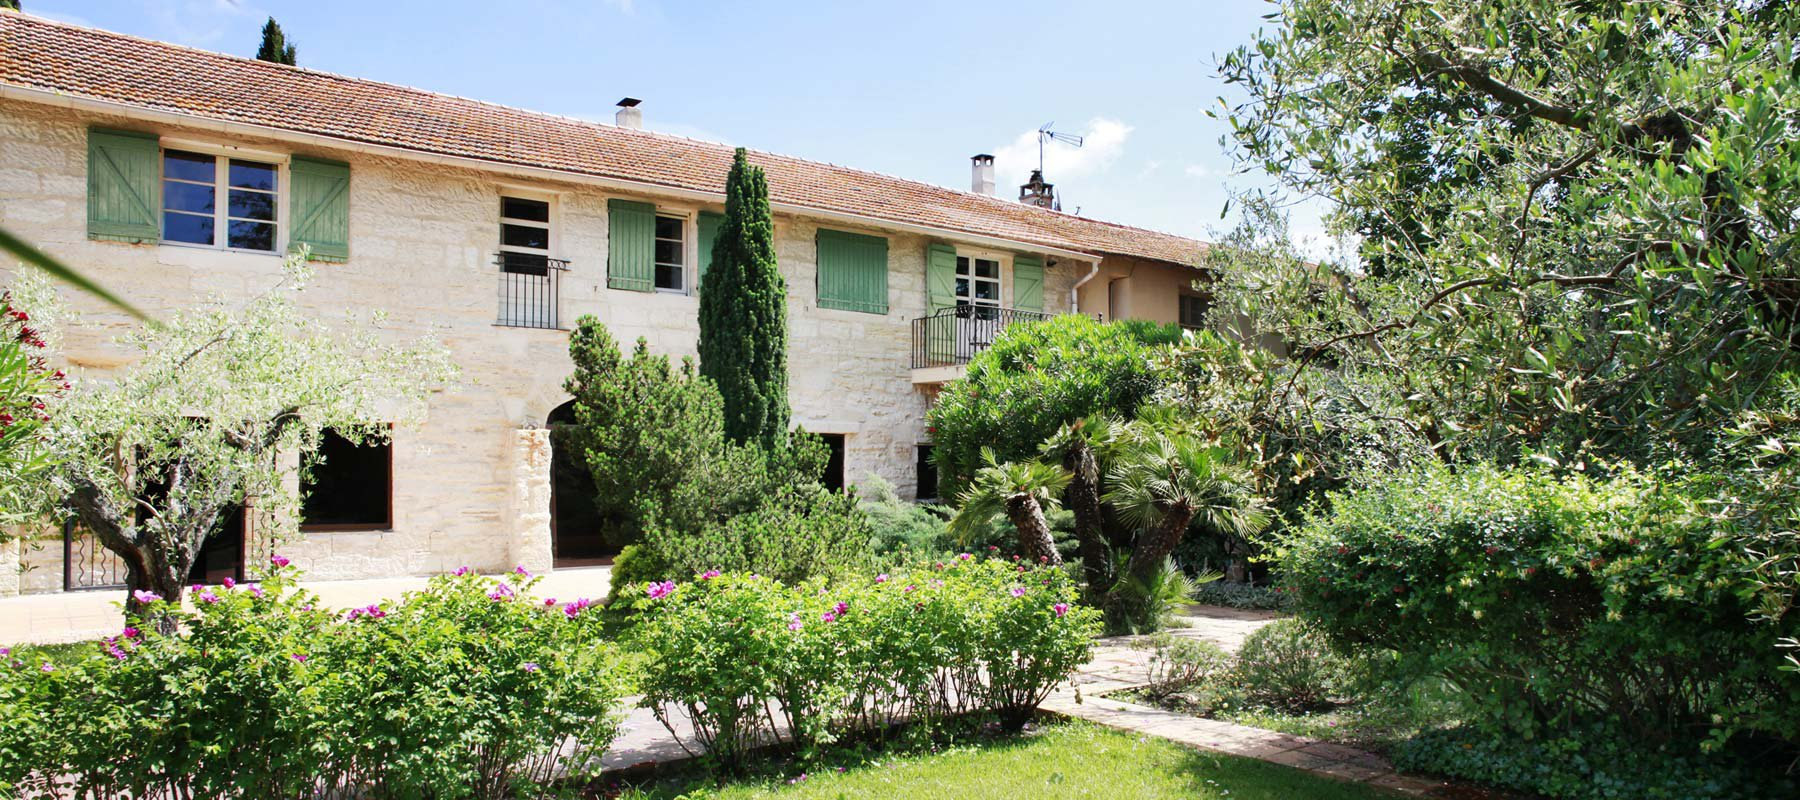 Country estate for sale close to Arles with 6 B&B